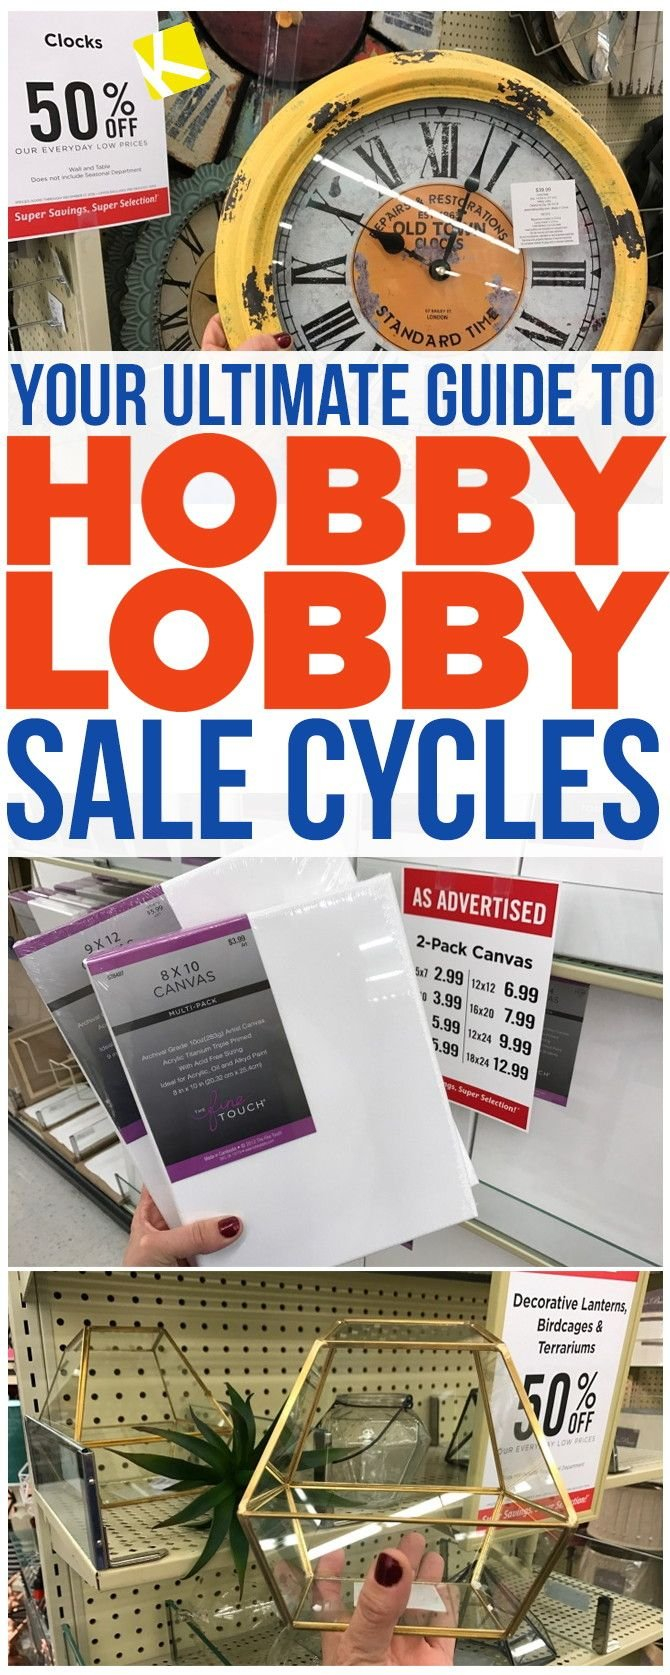 How To Know When Every Item At Hobby Lobby Goes On Sale   Store Calendar 2019 Hobby Lobby